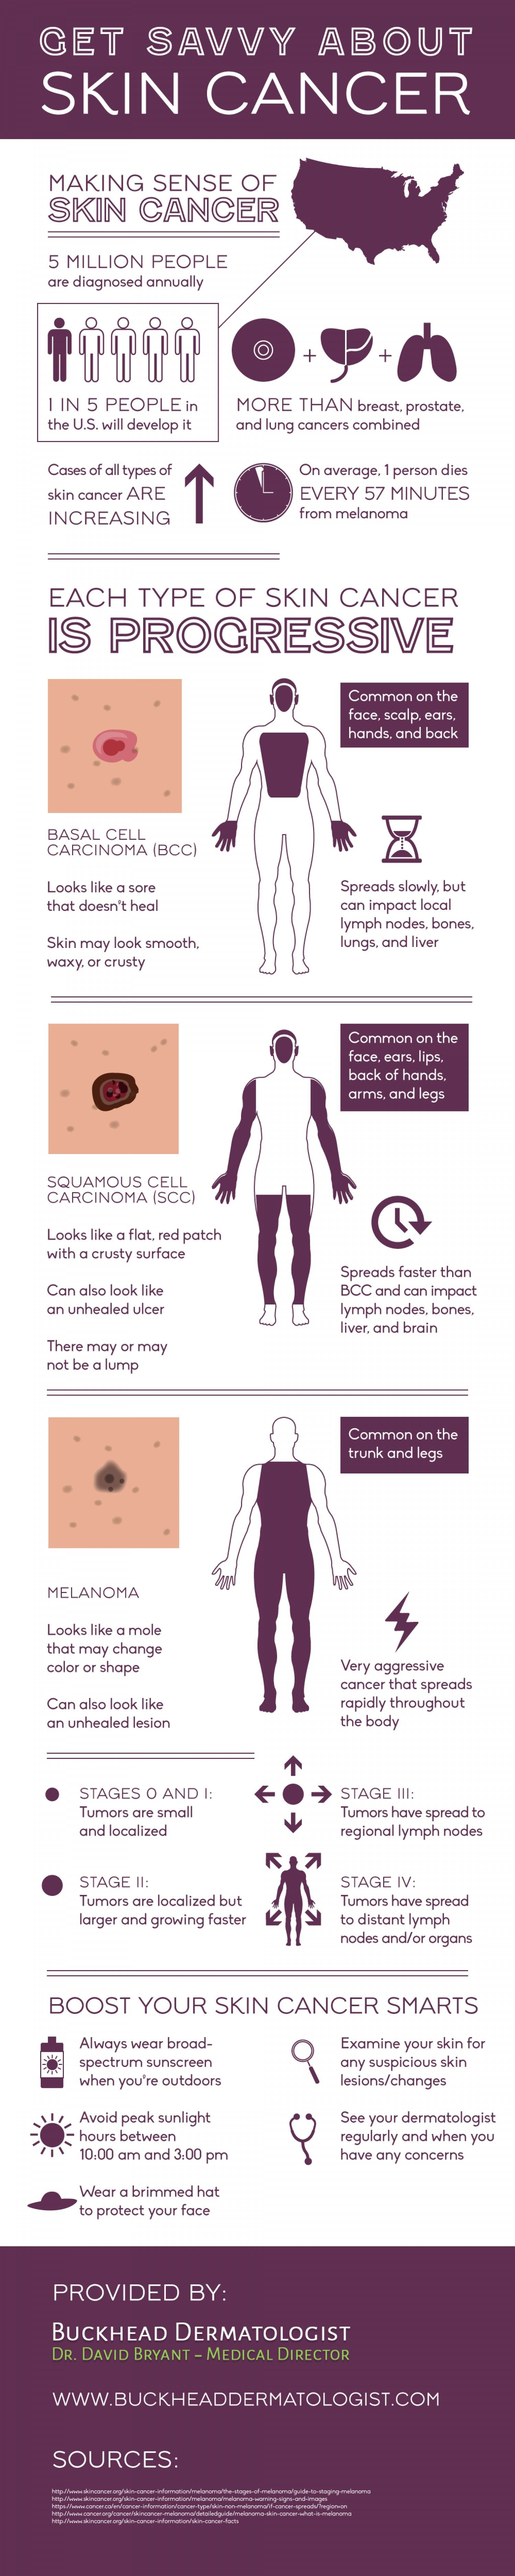 hight resolution of did you know that 5 million people are diagnosed with skin cancer each year